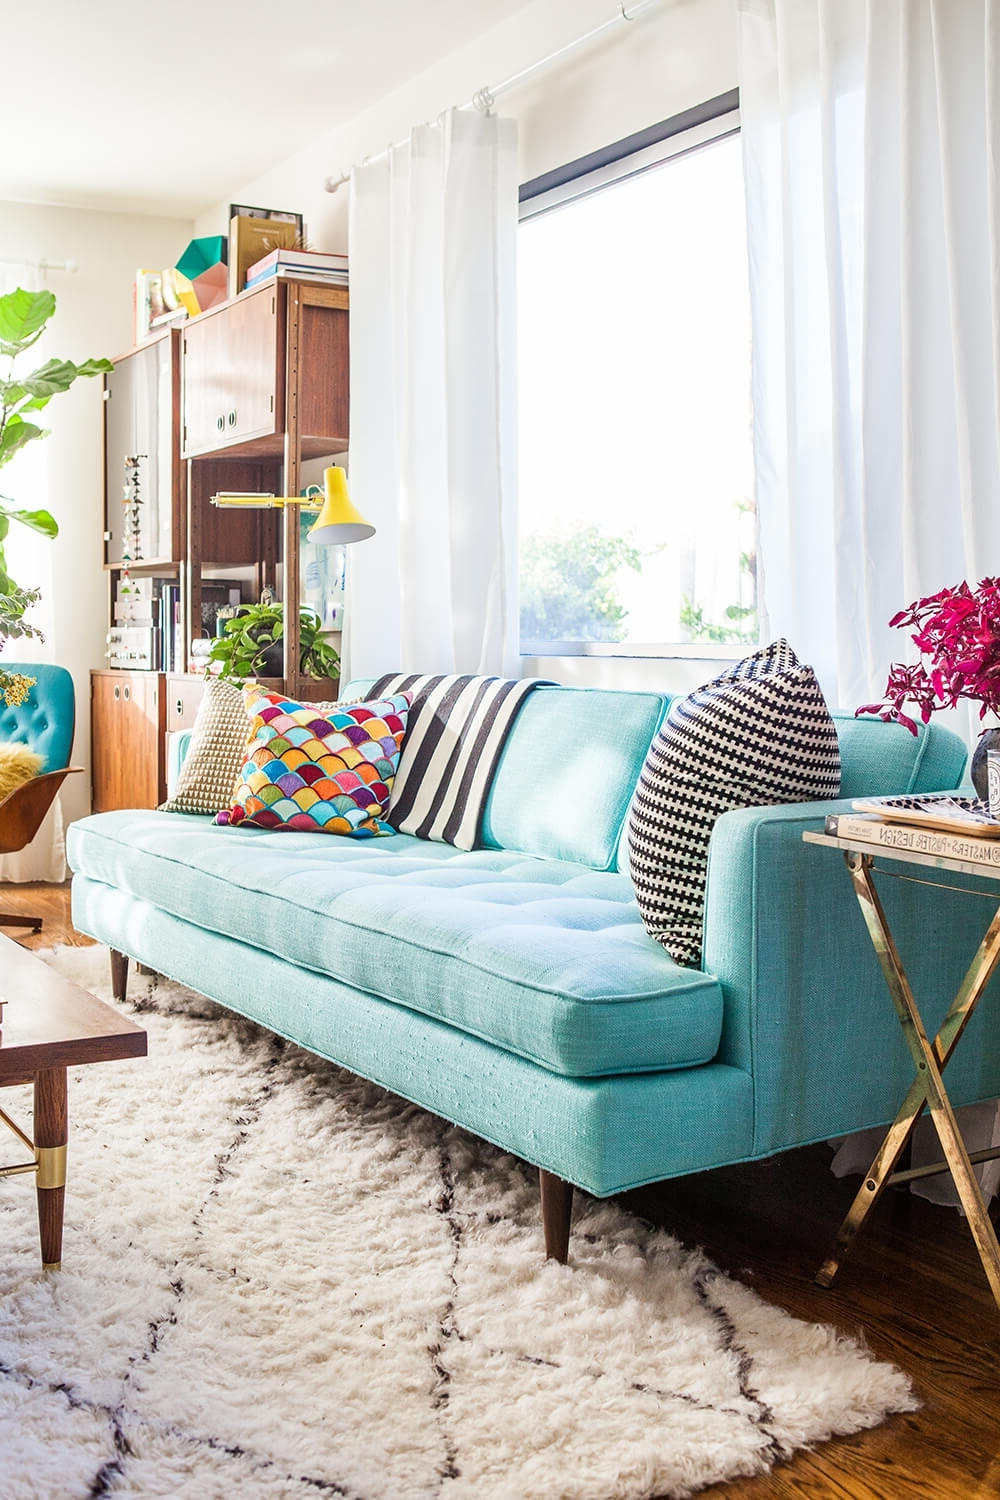 84 Affordable Amazing Sofas Under $1000 – Emily Henderson Intended For Most Recent Turquoise Sofas (Gallery 14 of 15)